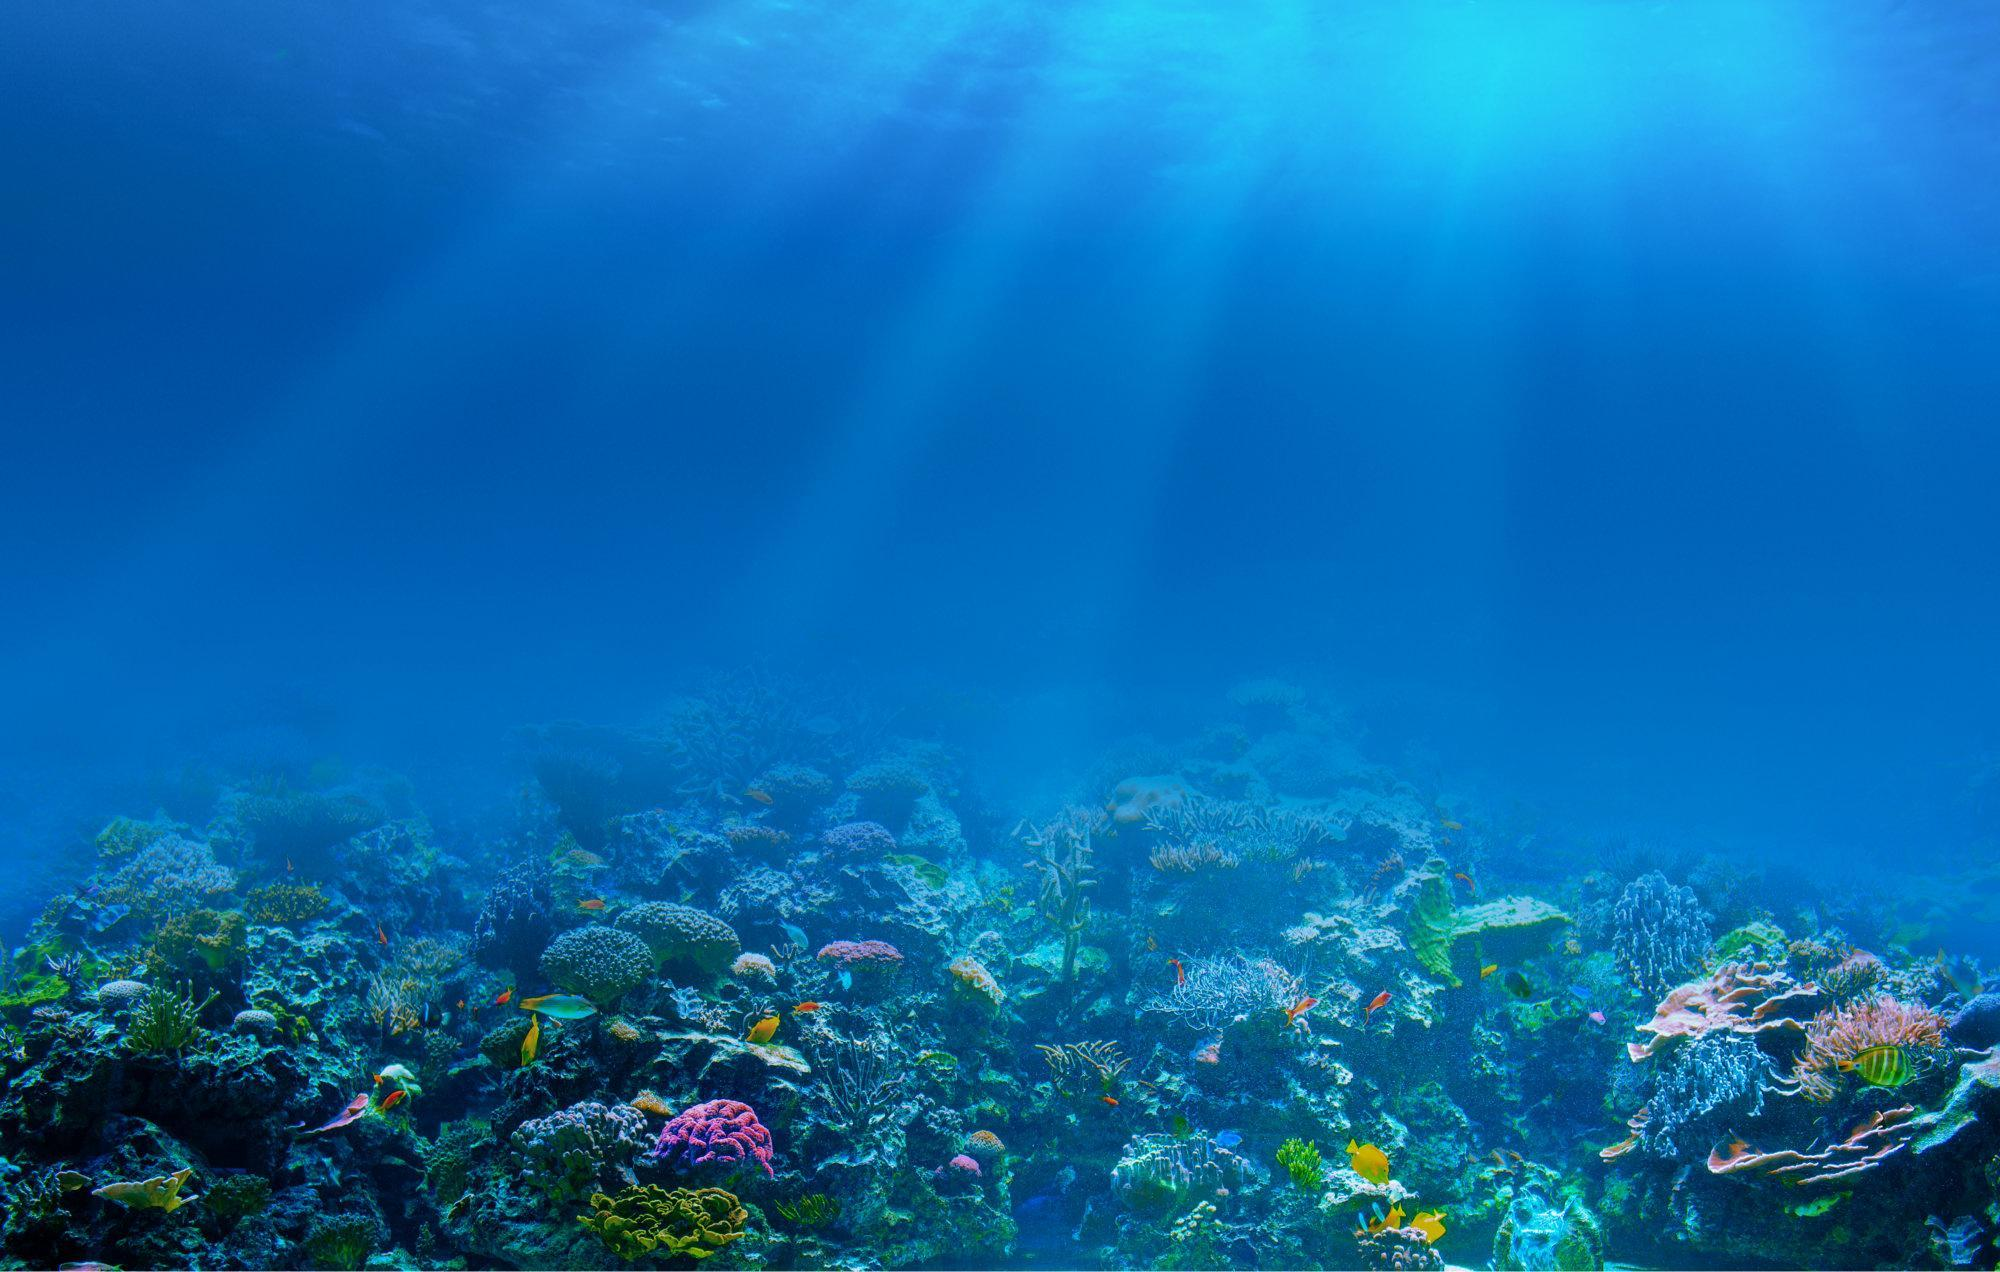 Can humans smell underwater? Why?